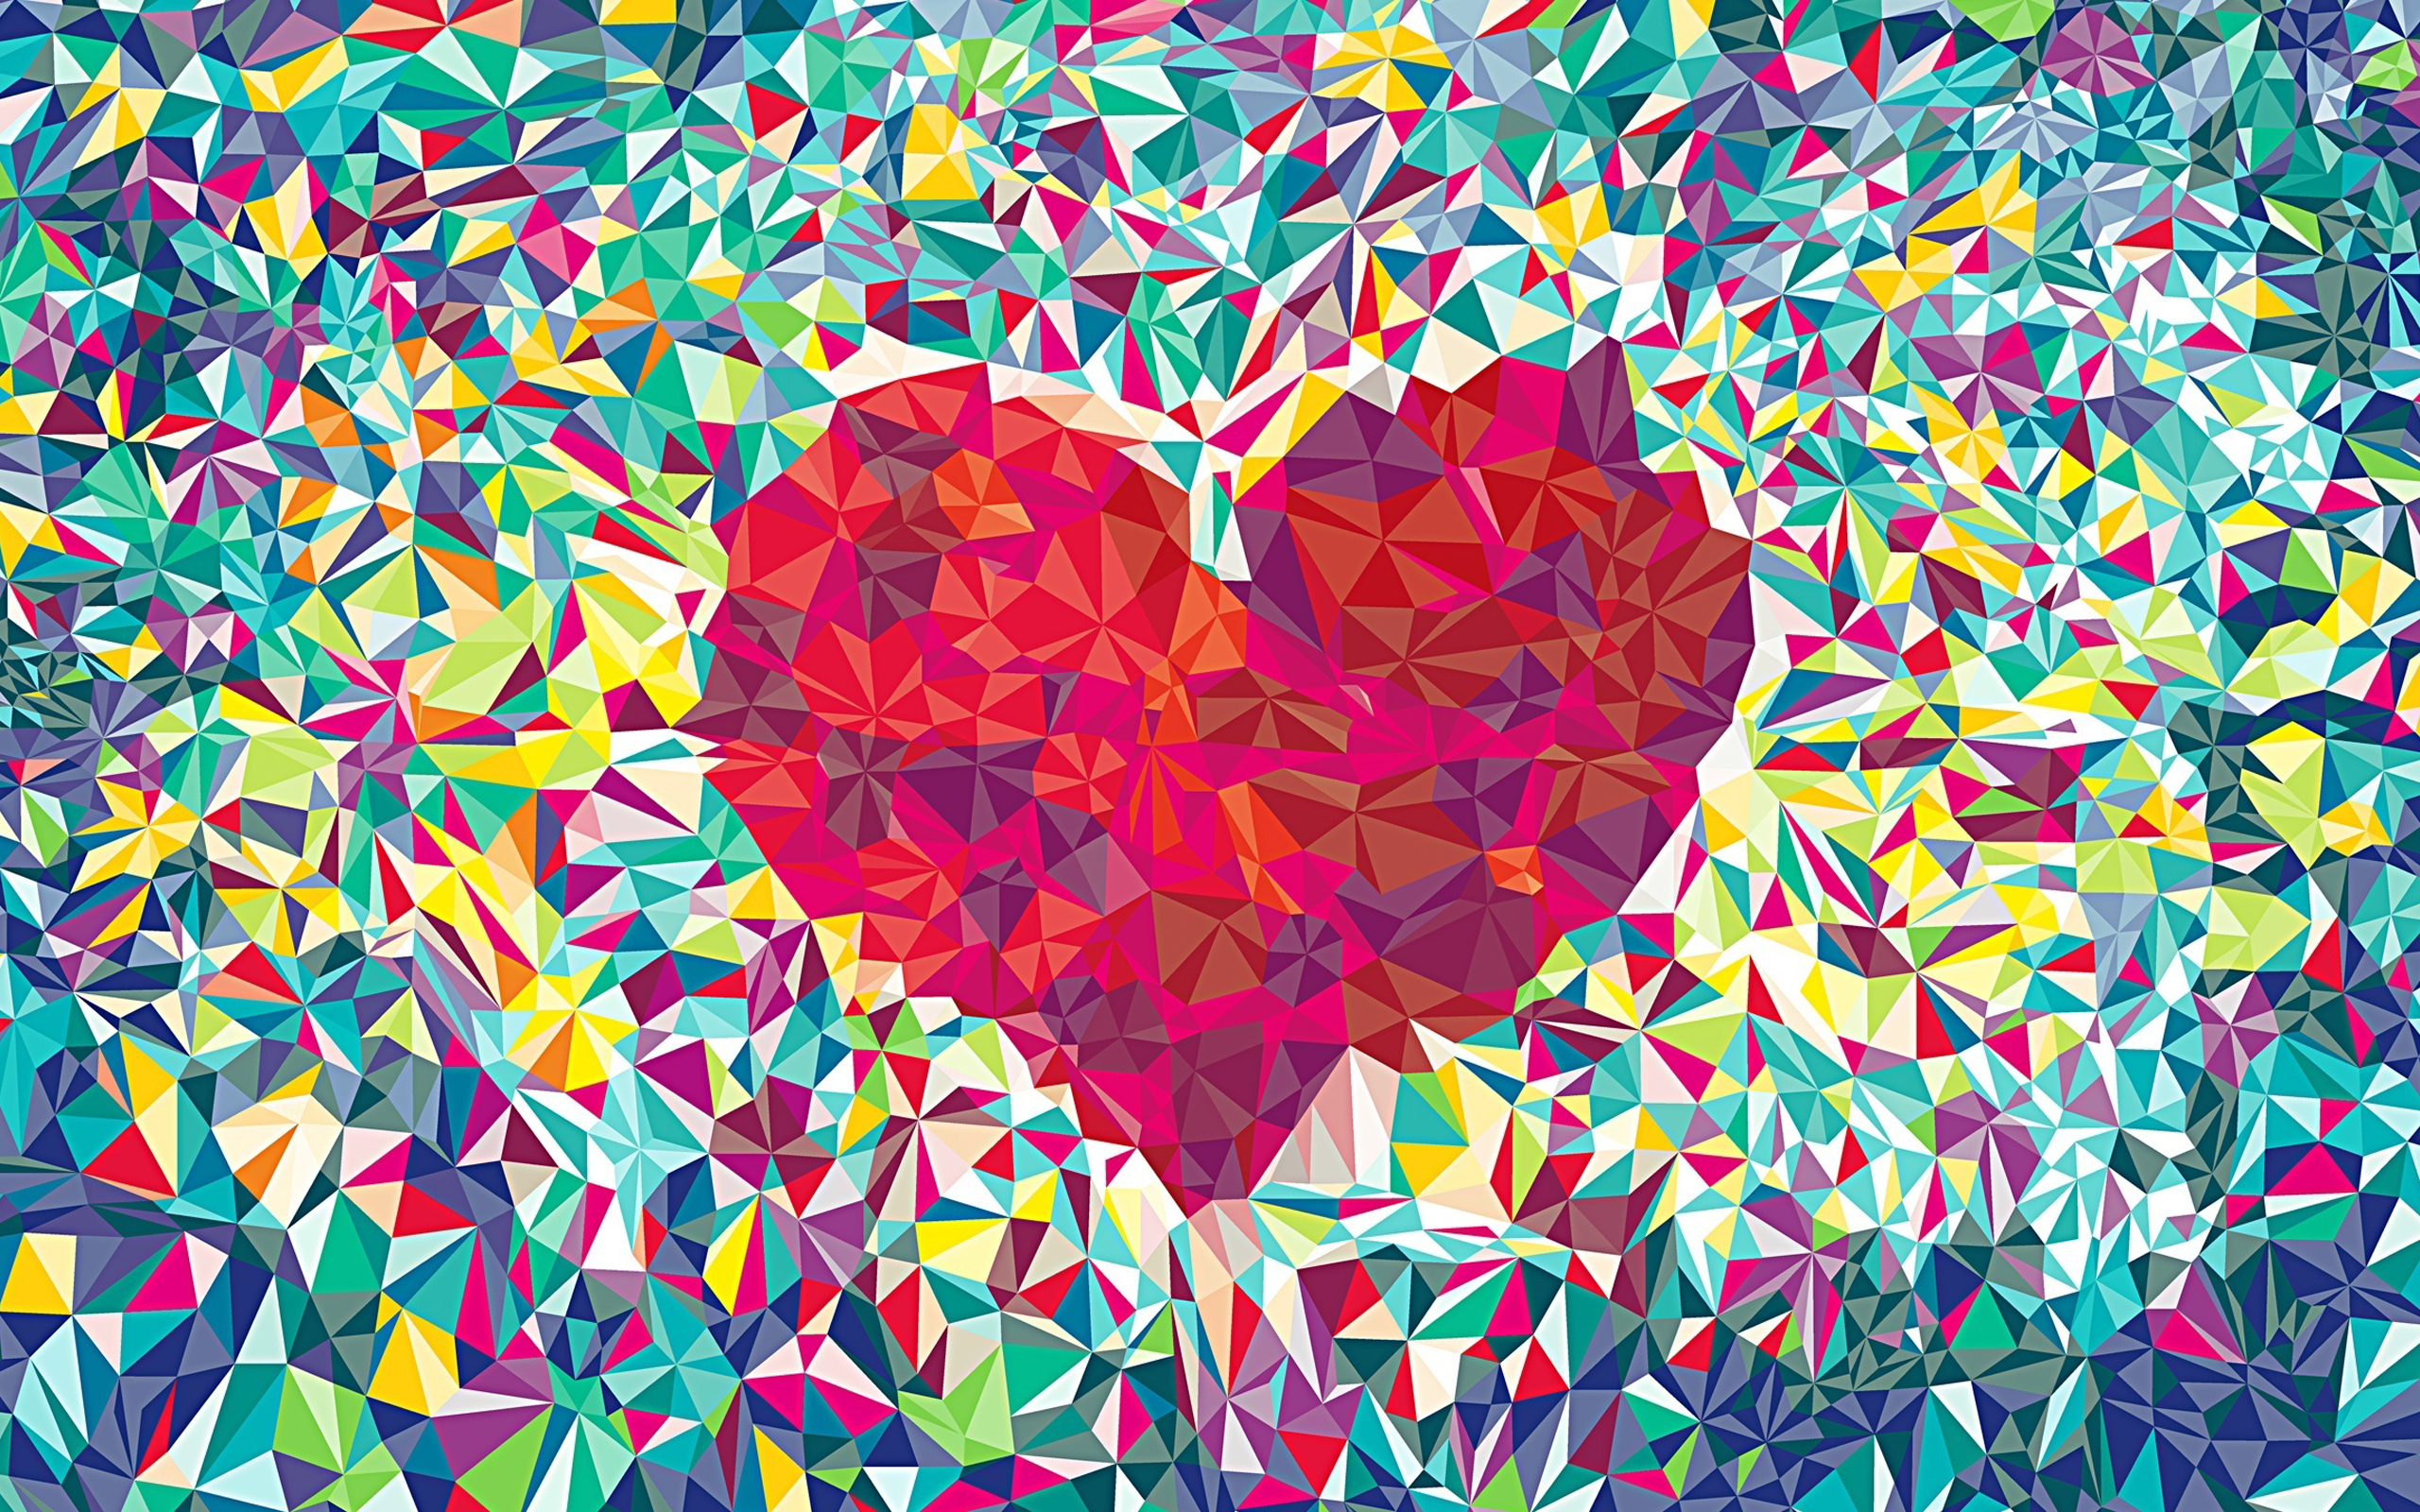 Geometric Heart Abstract Wallpapers 258.8 Kb